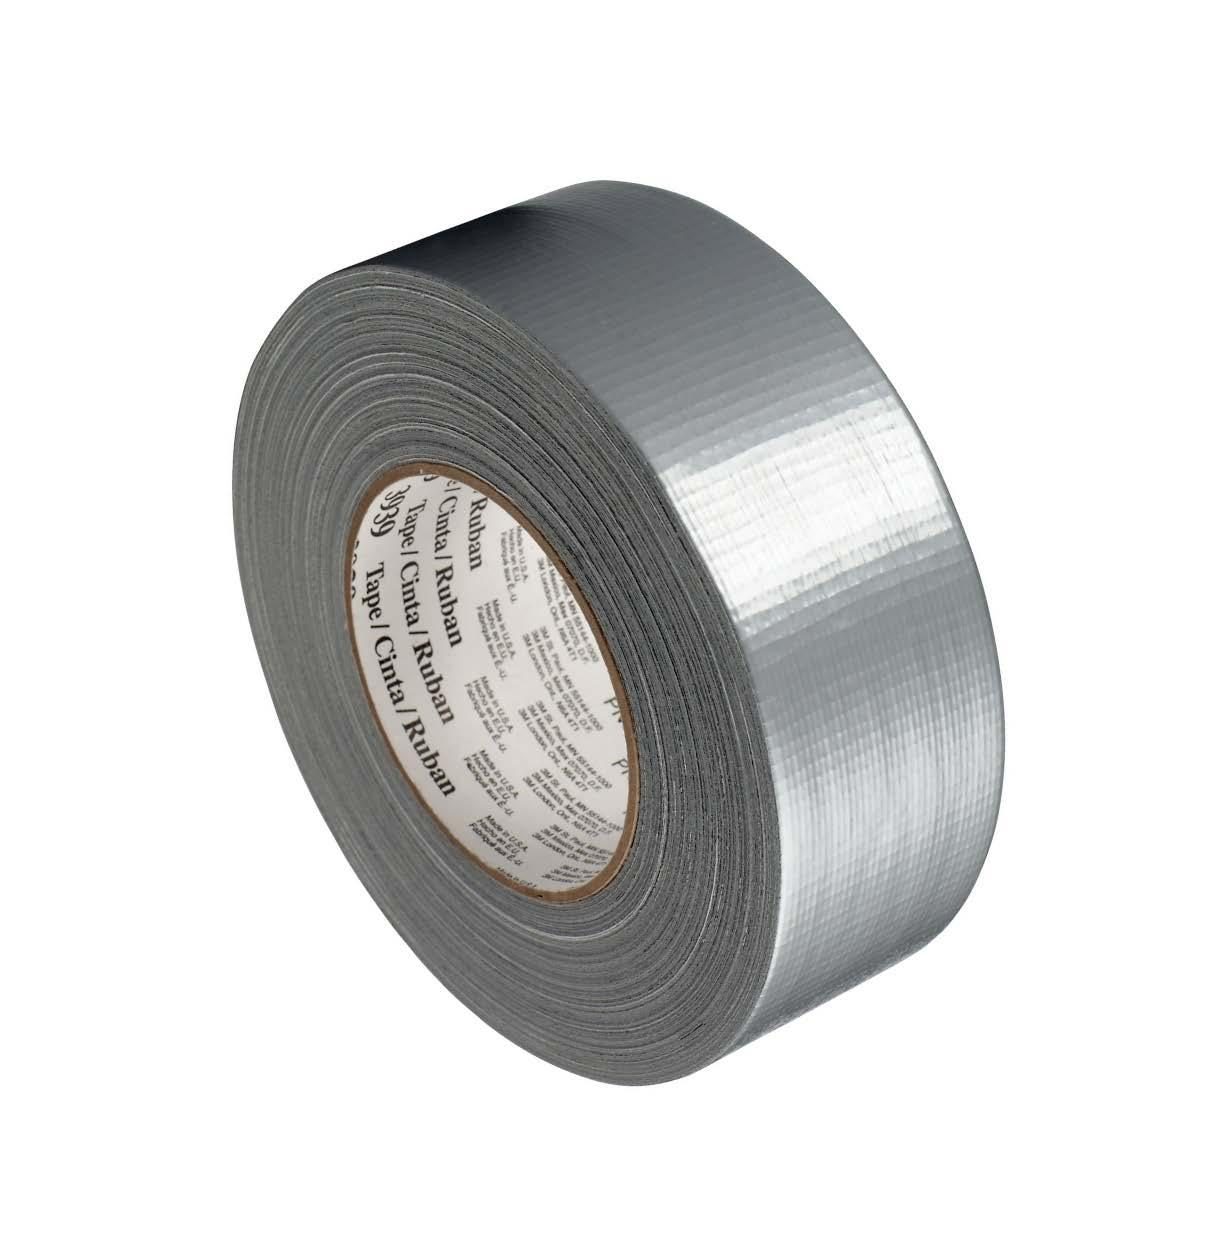 duct tape thesis The hypothesis states that there is an area of application between two pieces of duct tape such that they thesis abstract two honors theses 73.